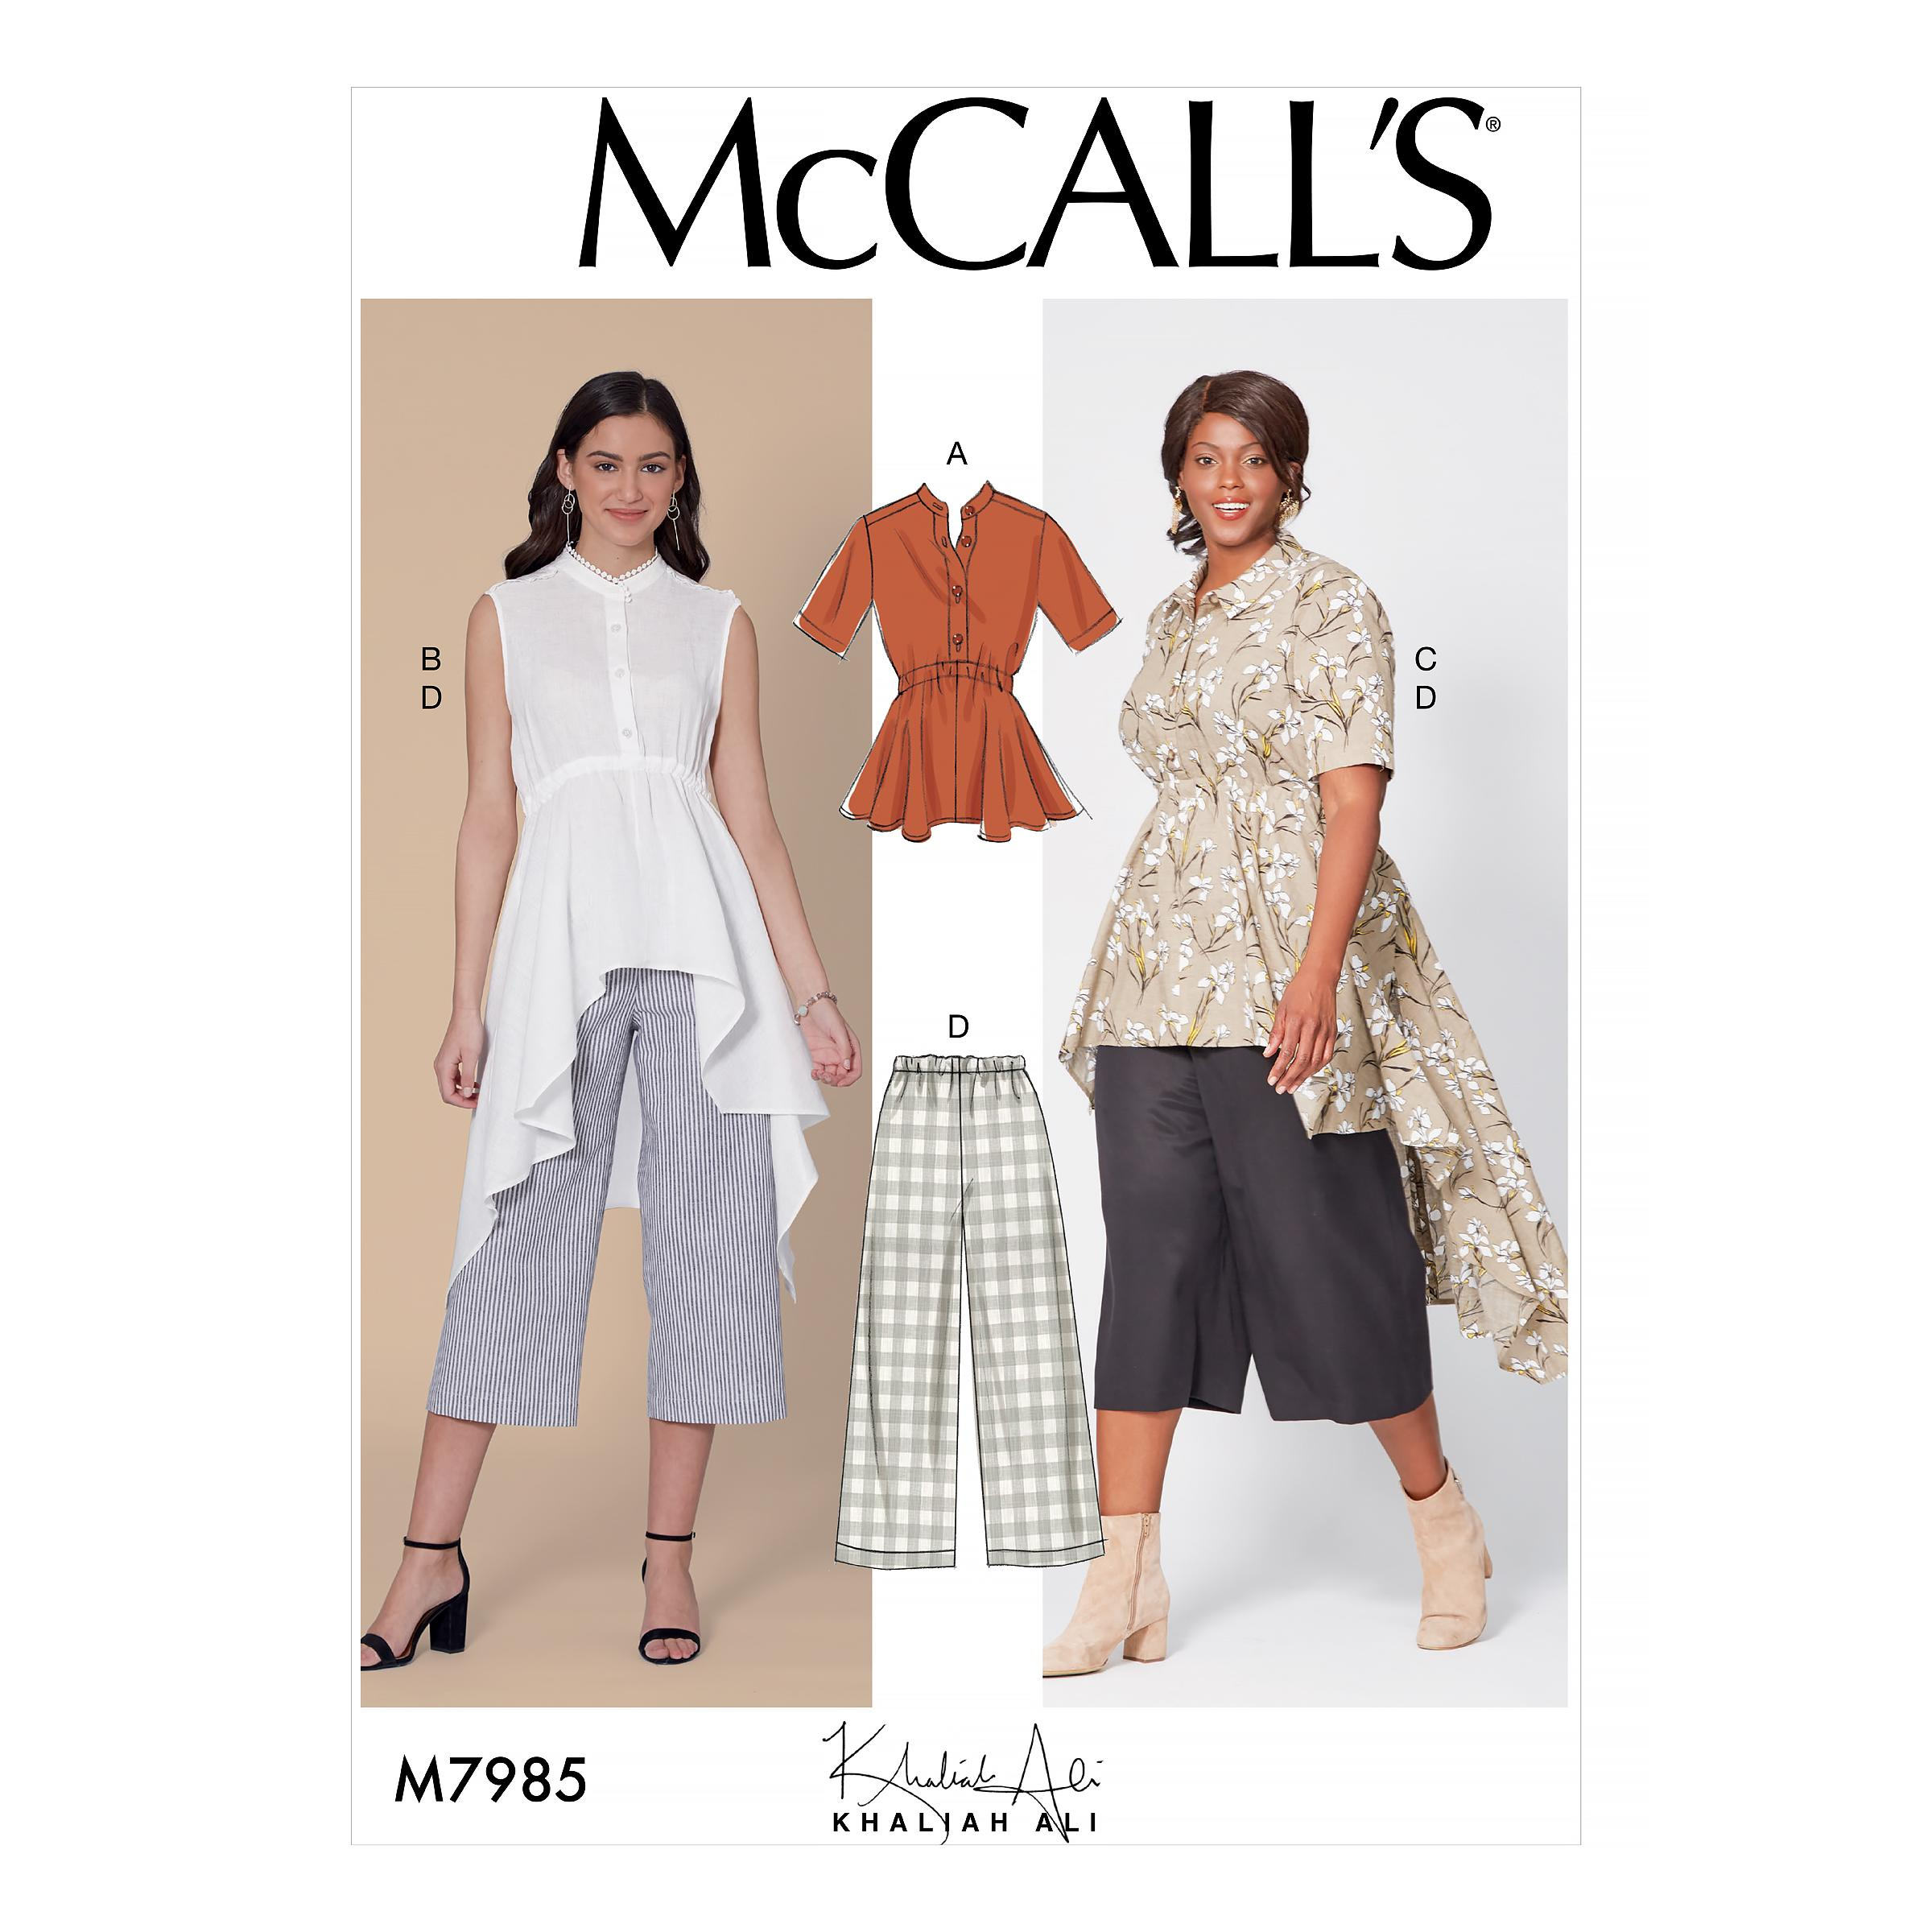 McCalls M7985 Misses Tops, Misses Skirts, Misses Coordinates, Plus Sizes